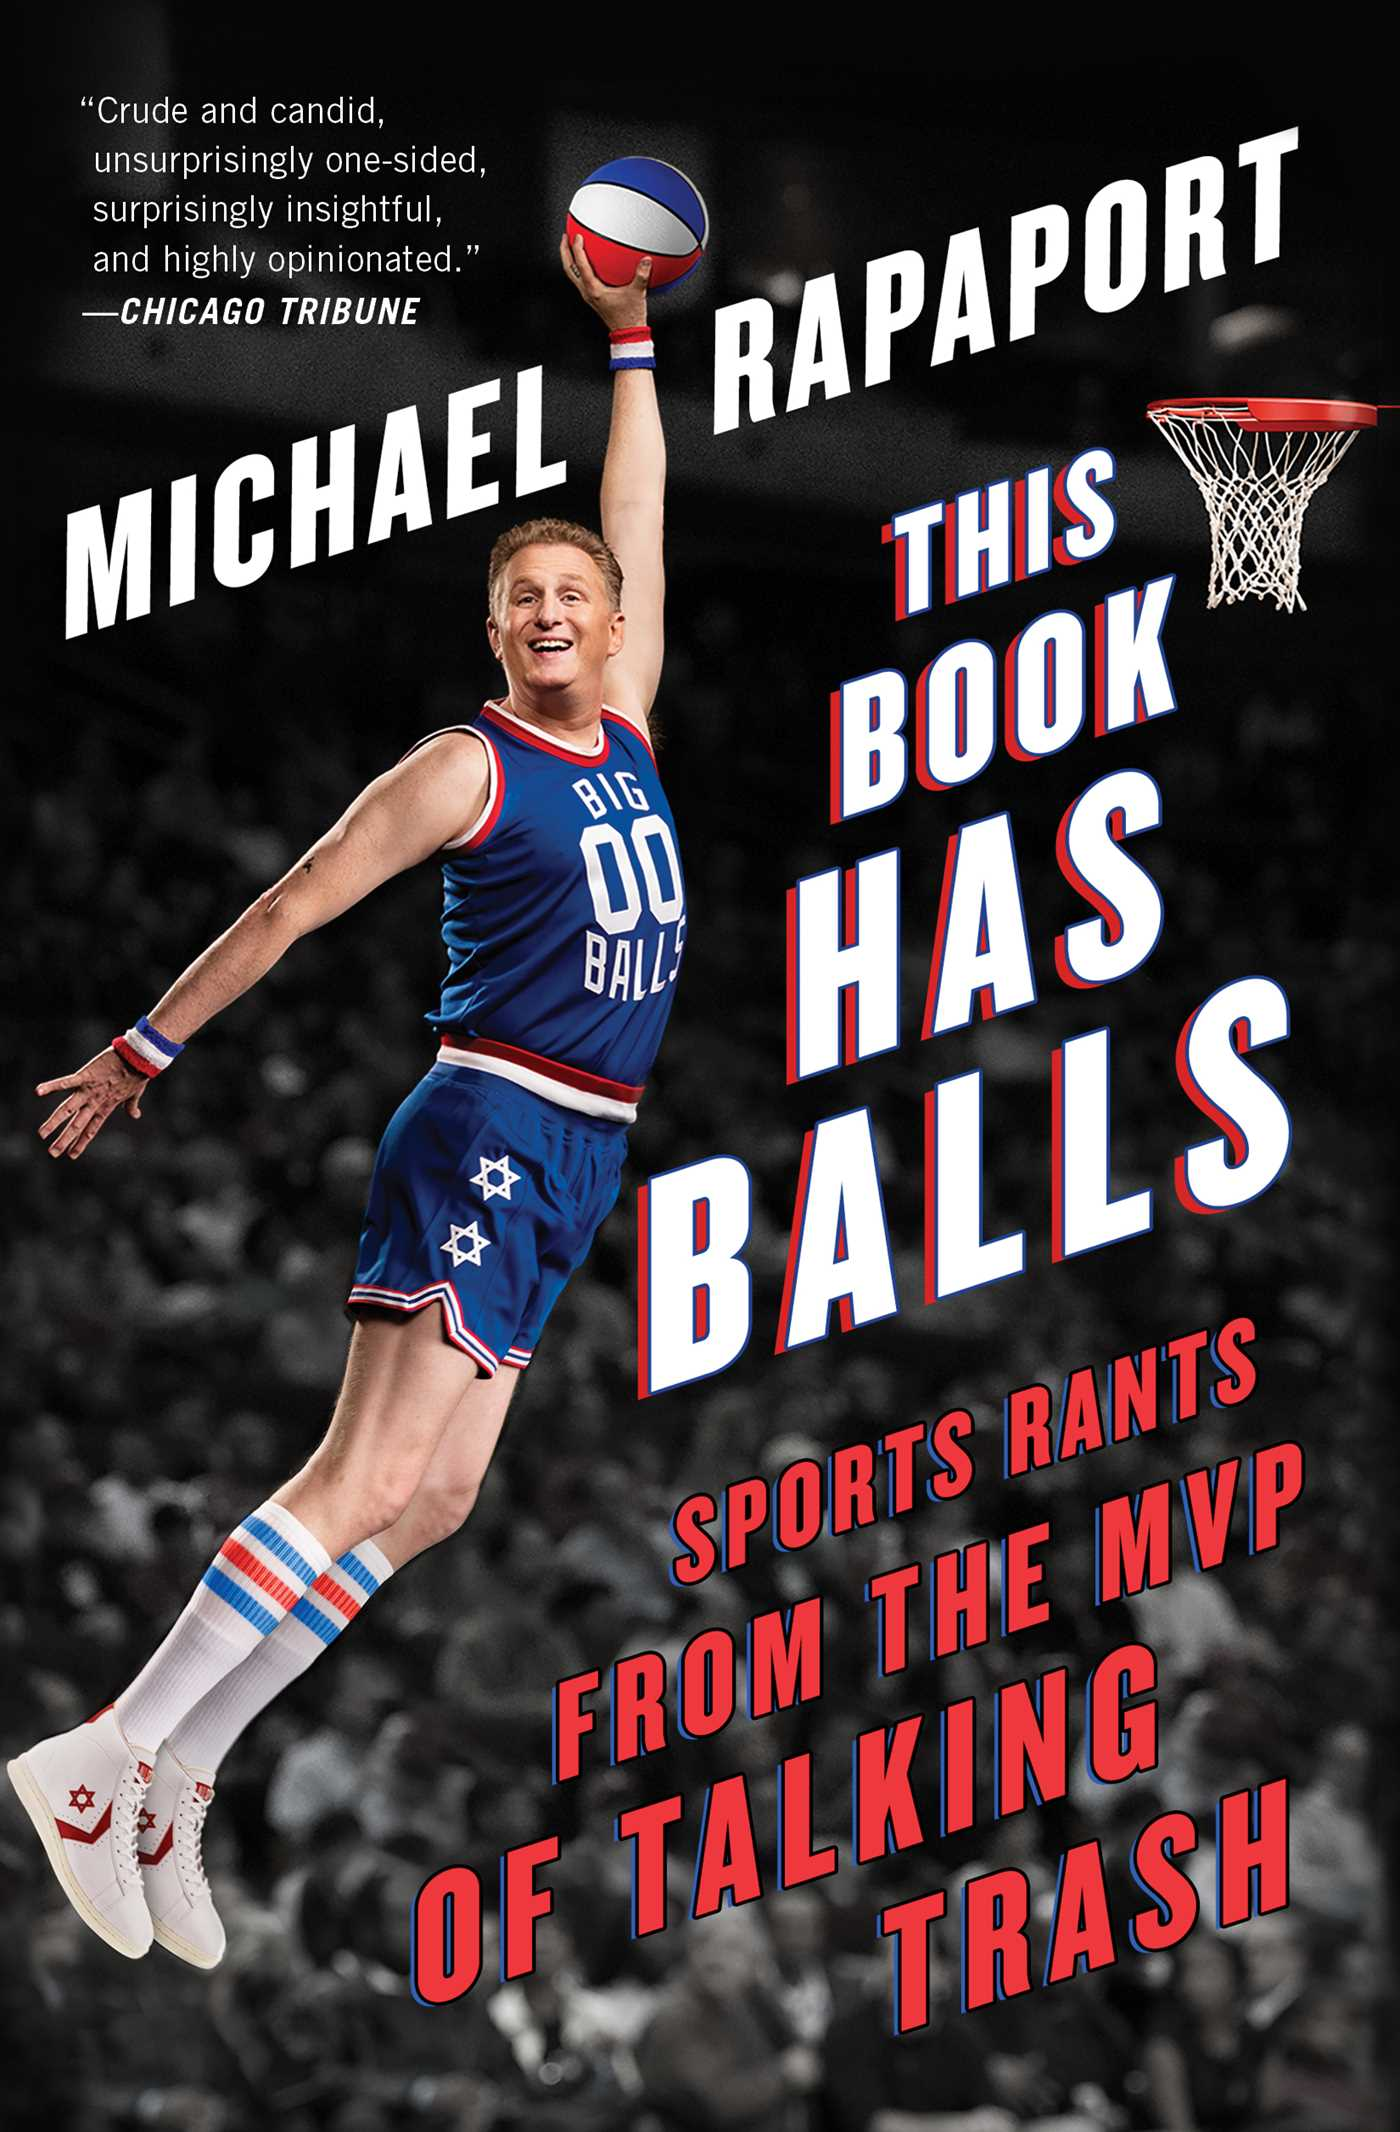 This Book Has Balls Sports Rants from the MVP of Talking Trash